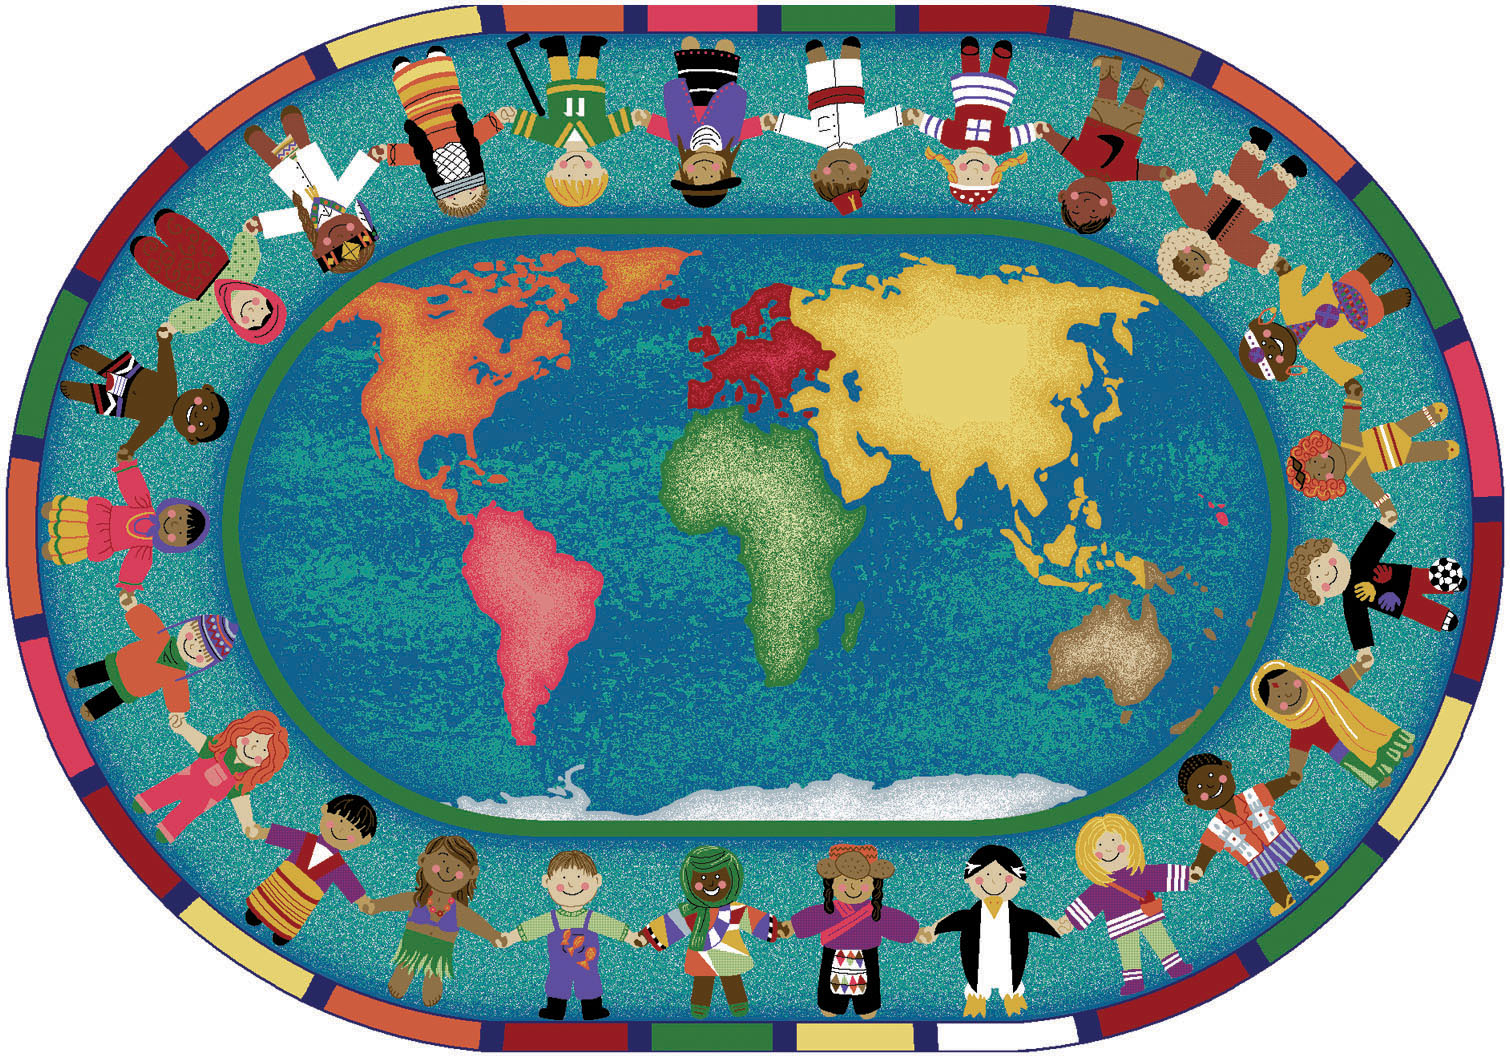 Hands around the world clipart 020911 vector clip art for Art from around the world